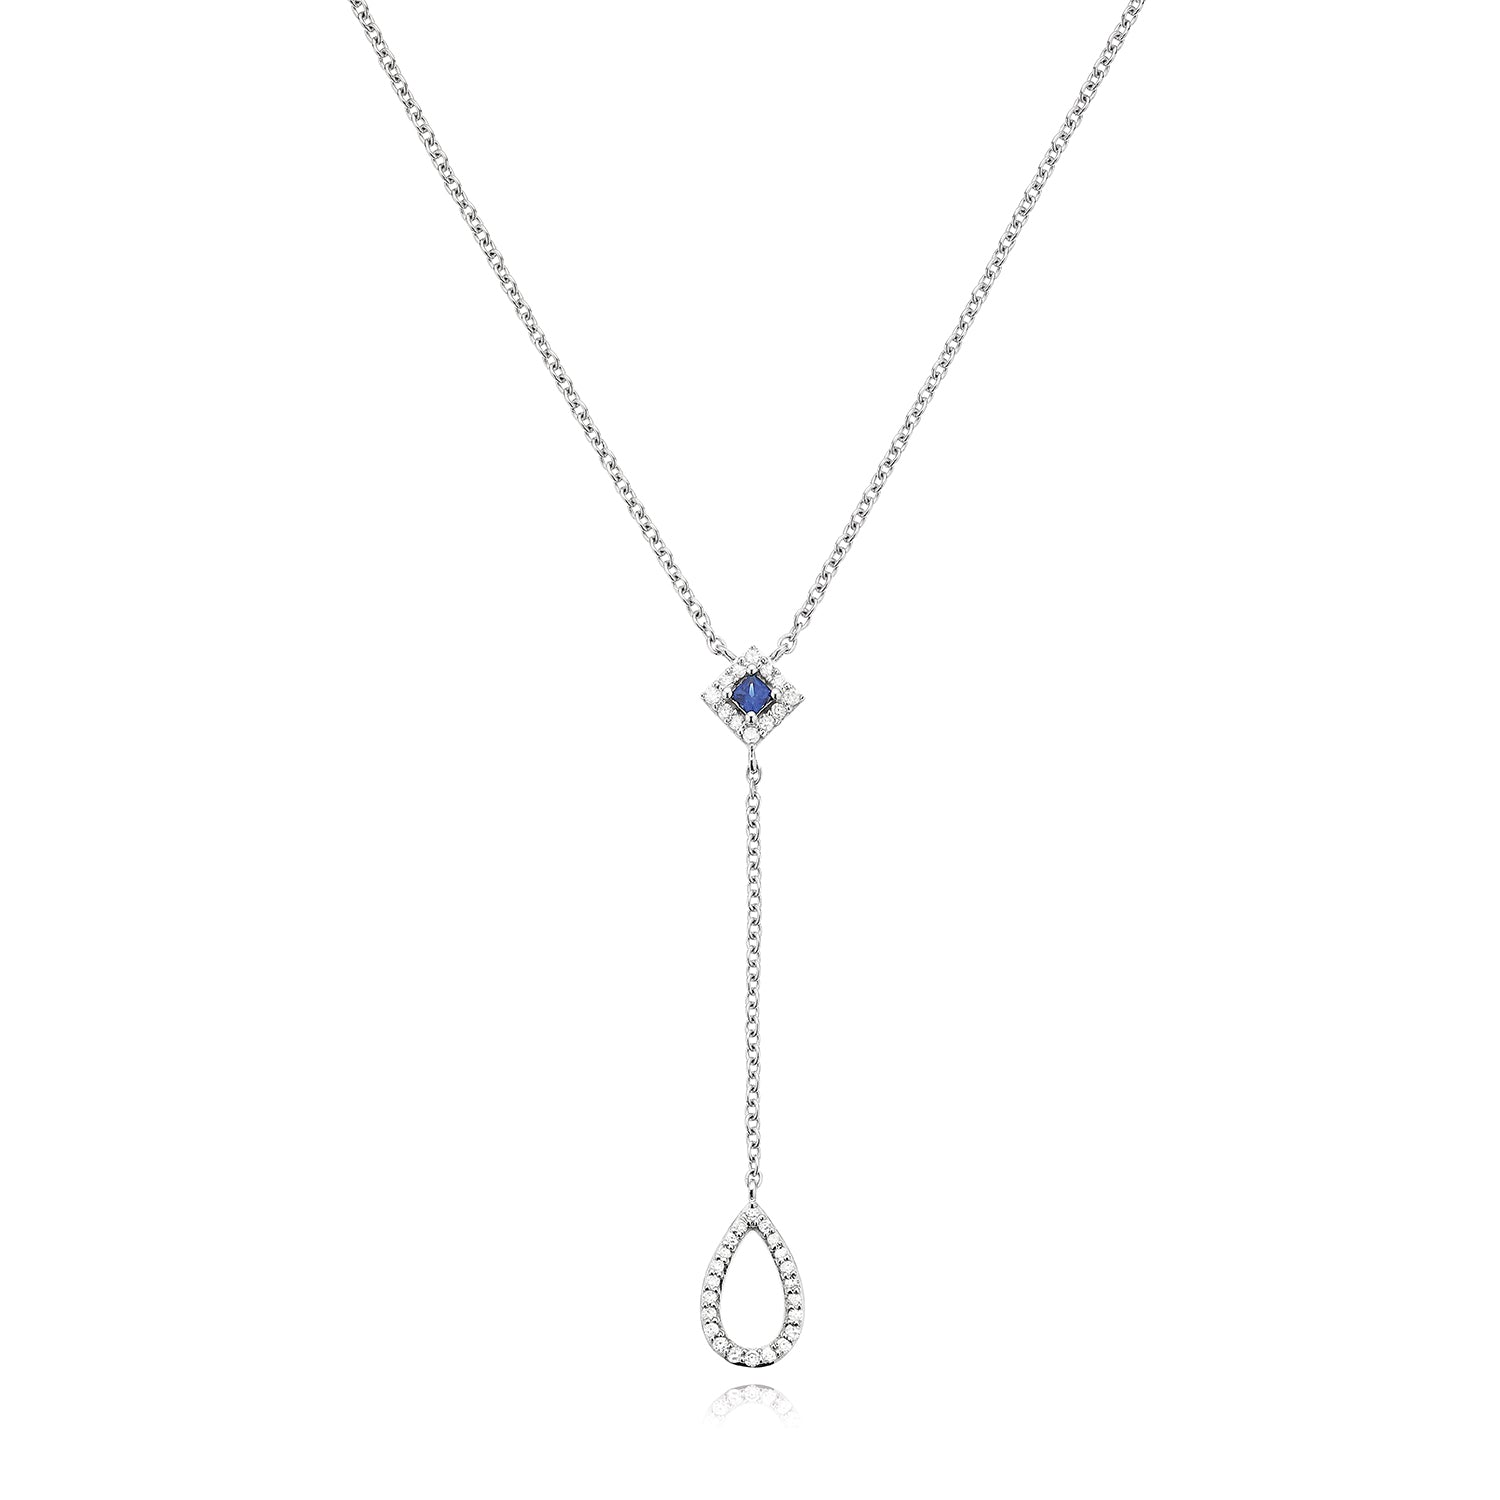 Vera Wang Love Sterling Silver Round Brilliant Cut with 0.15 CARAT tw of Diamonds